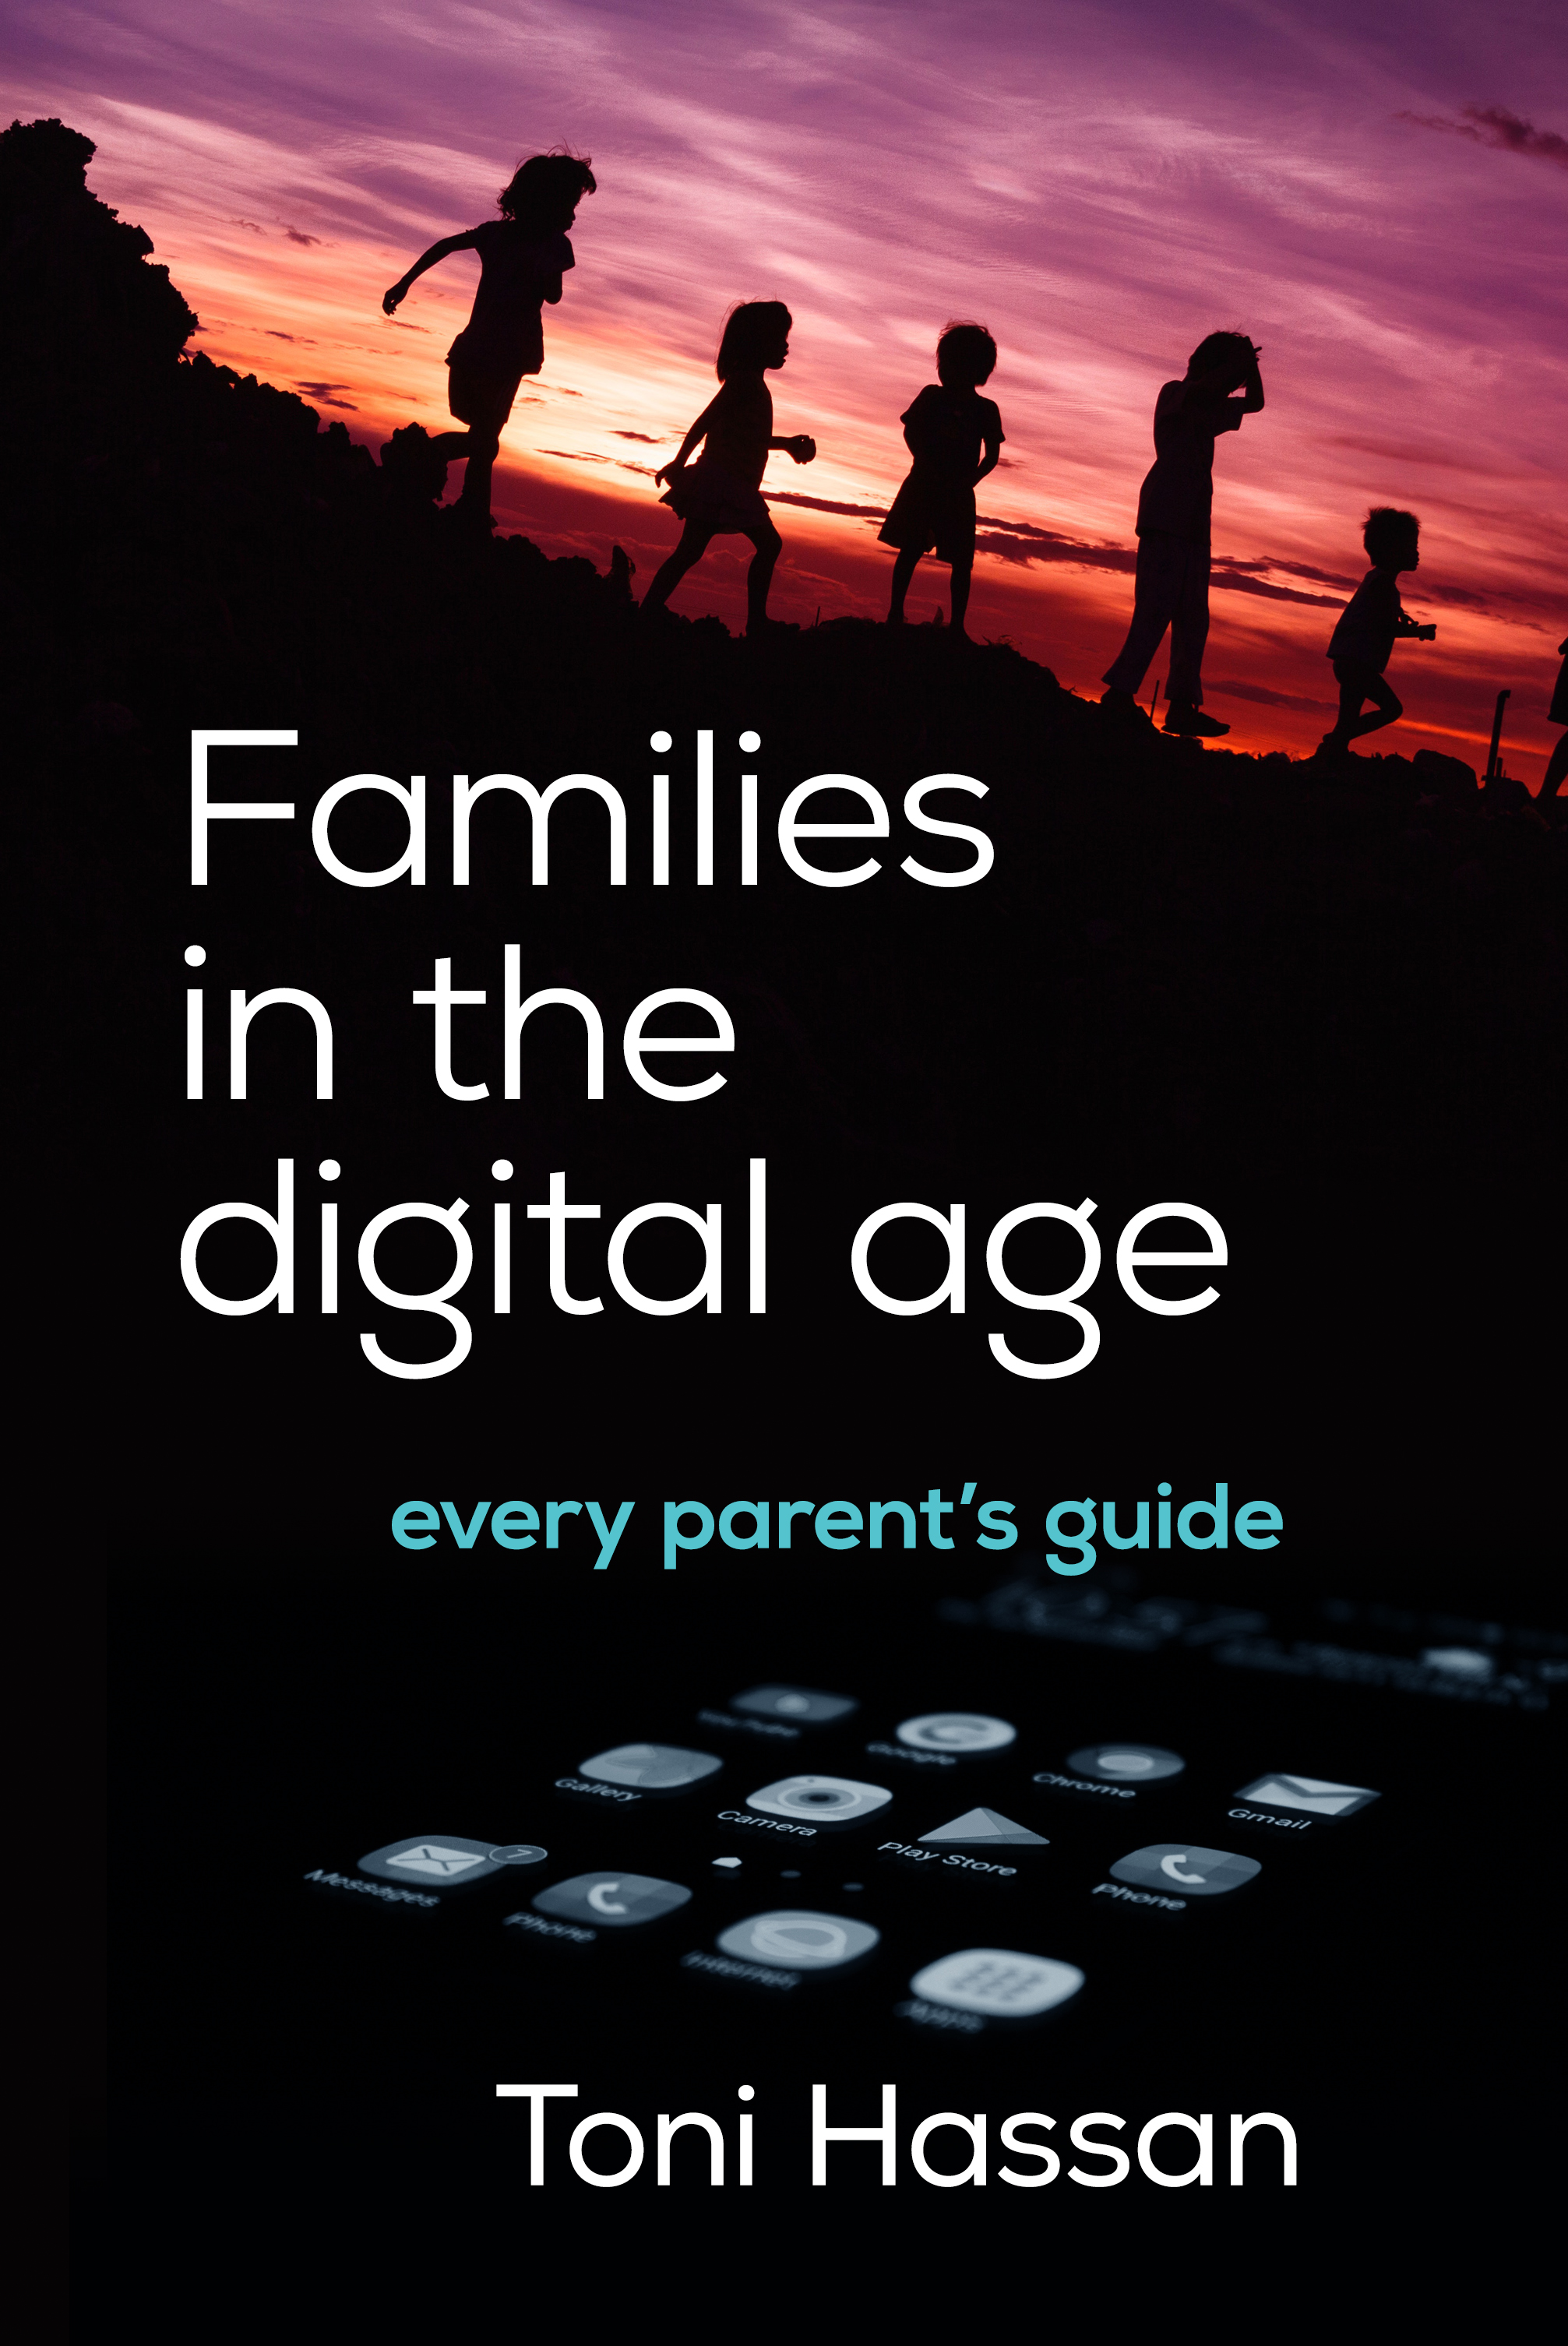 Families in the Digital Age_Cover 06.jpg